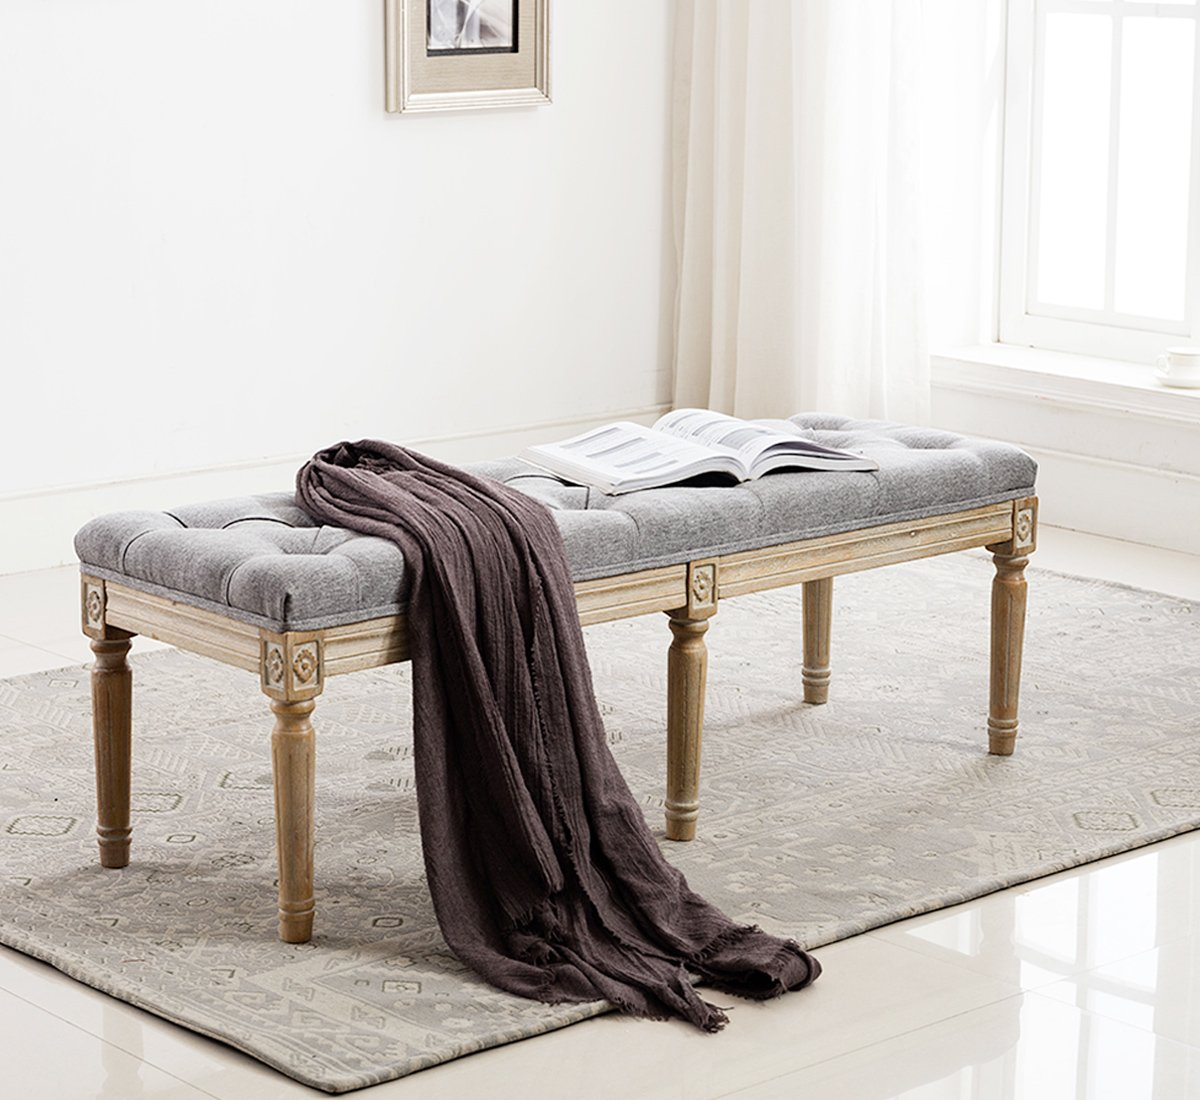 Traditional-Tufted-Entryway-Bench-With-Wood-Carvings-And-Grey-Tufted-Seat-Rubber-Wood